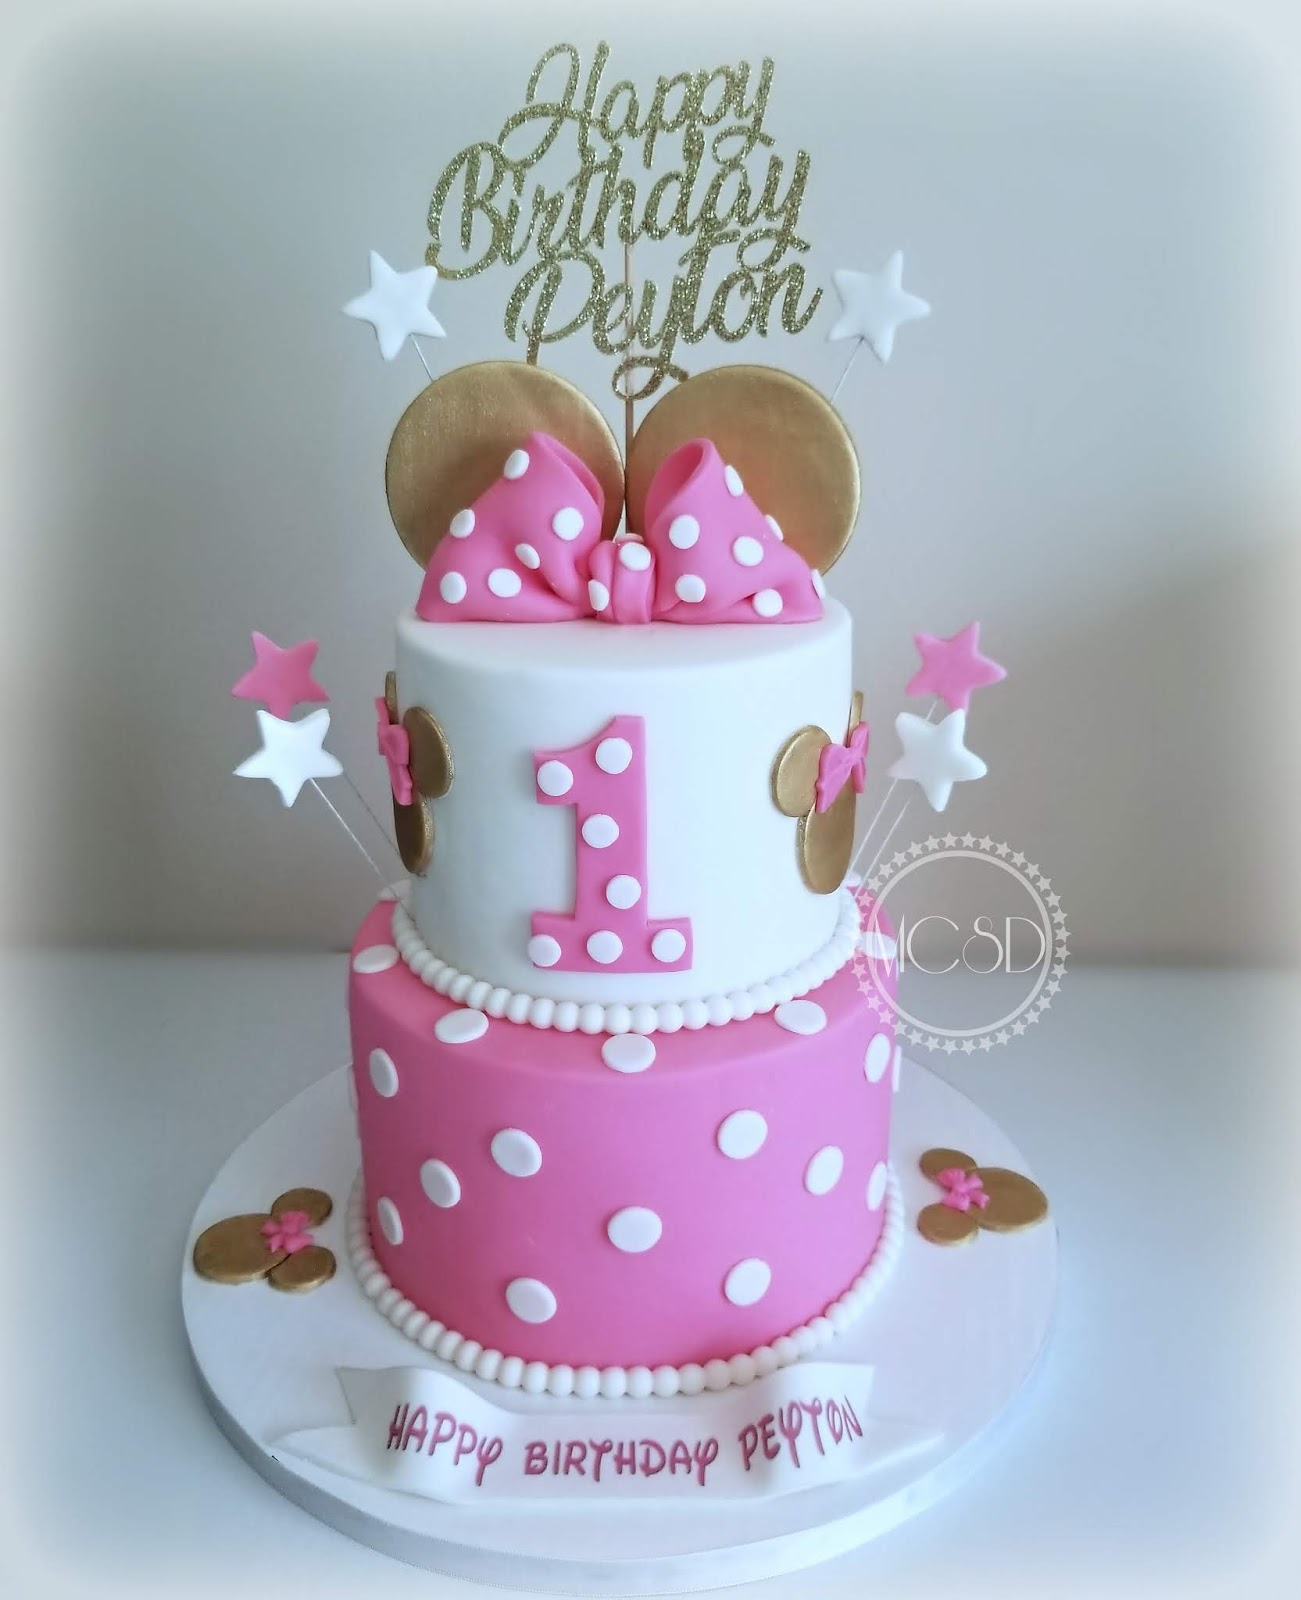 Pleasant Cakesbyzana Minnie Mouse 1St Birthday Cake Personalised Birthday Cards Veneteletsinfo